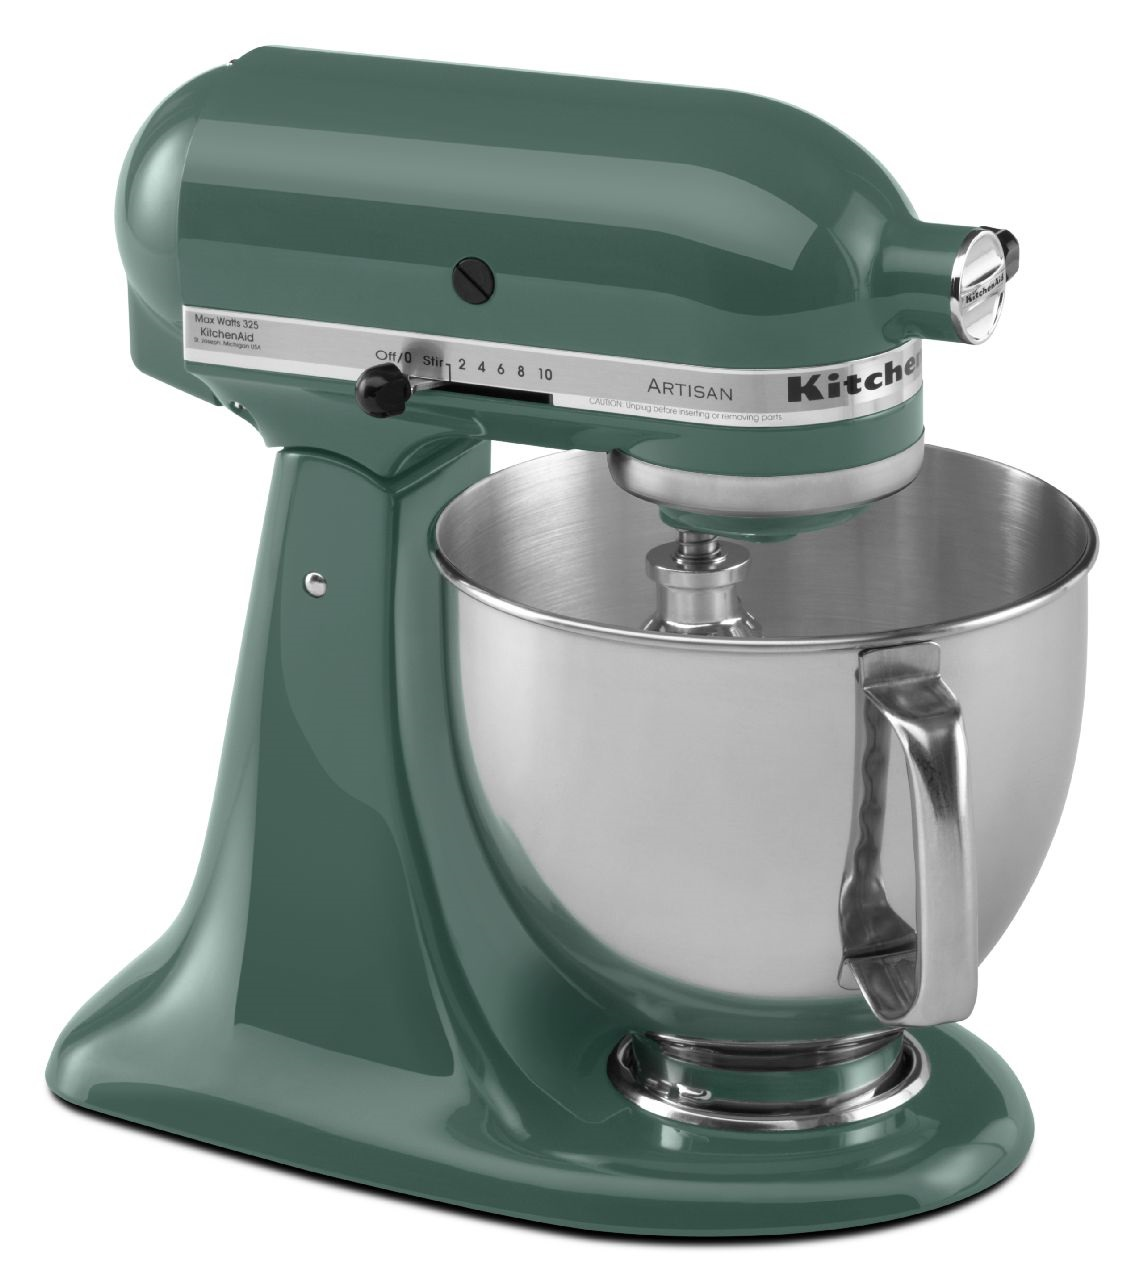 KitchenAid-Refurbished-Artisan-Series-5-Quart-Tilt-Head-Stand-Mixer-RRK150 thumbnail 18